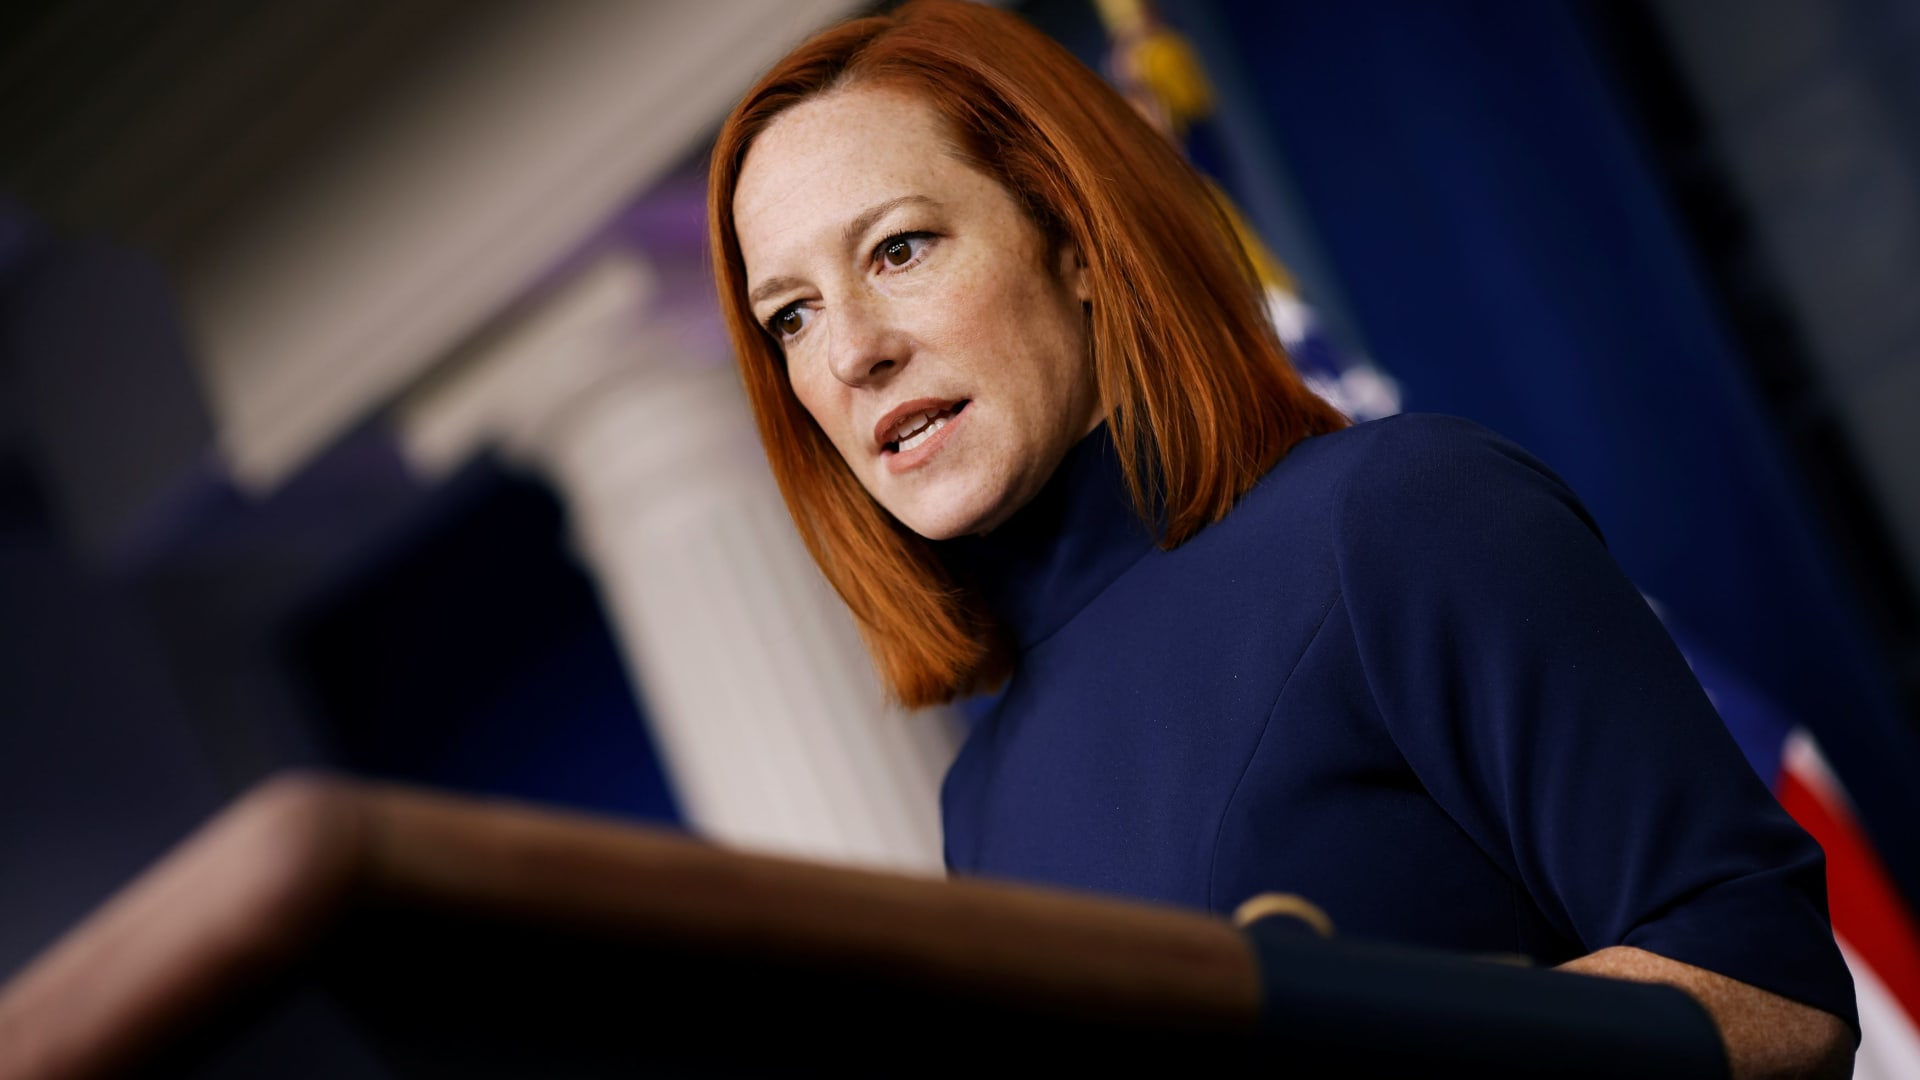 White House Press Secretary Jen Psaki delivers remarks during a press briefing at the White House in Washington, February 8, 2021.